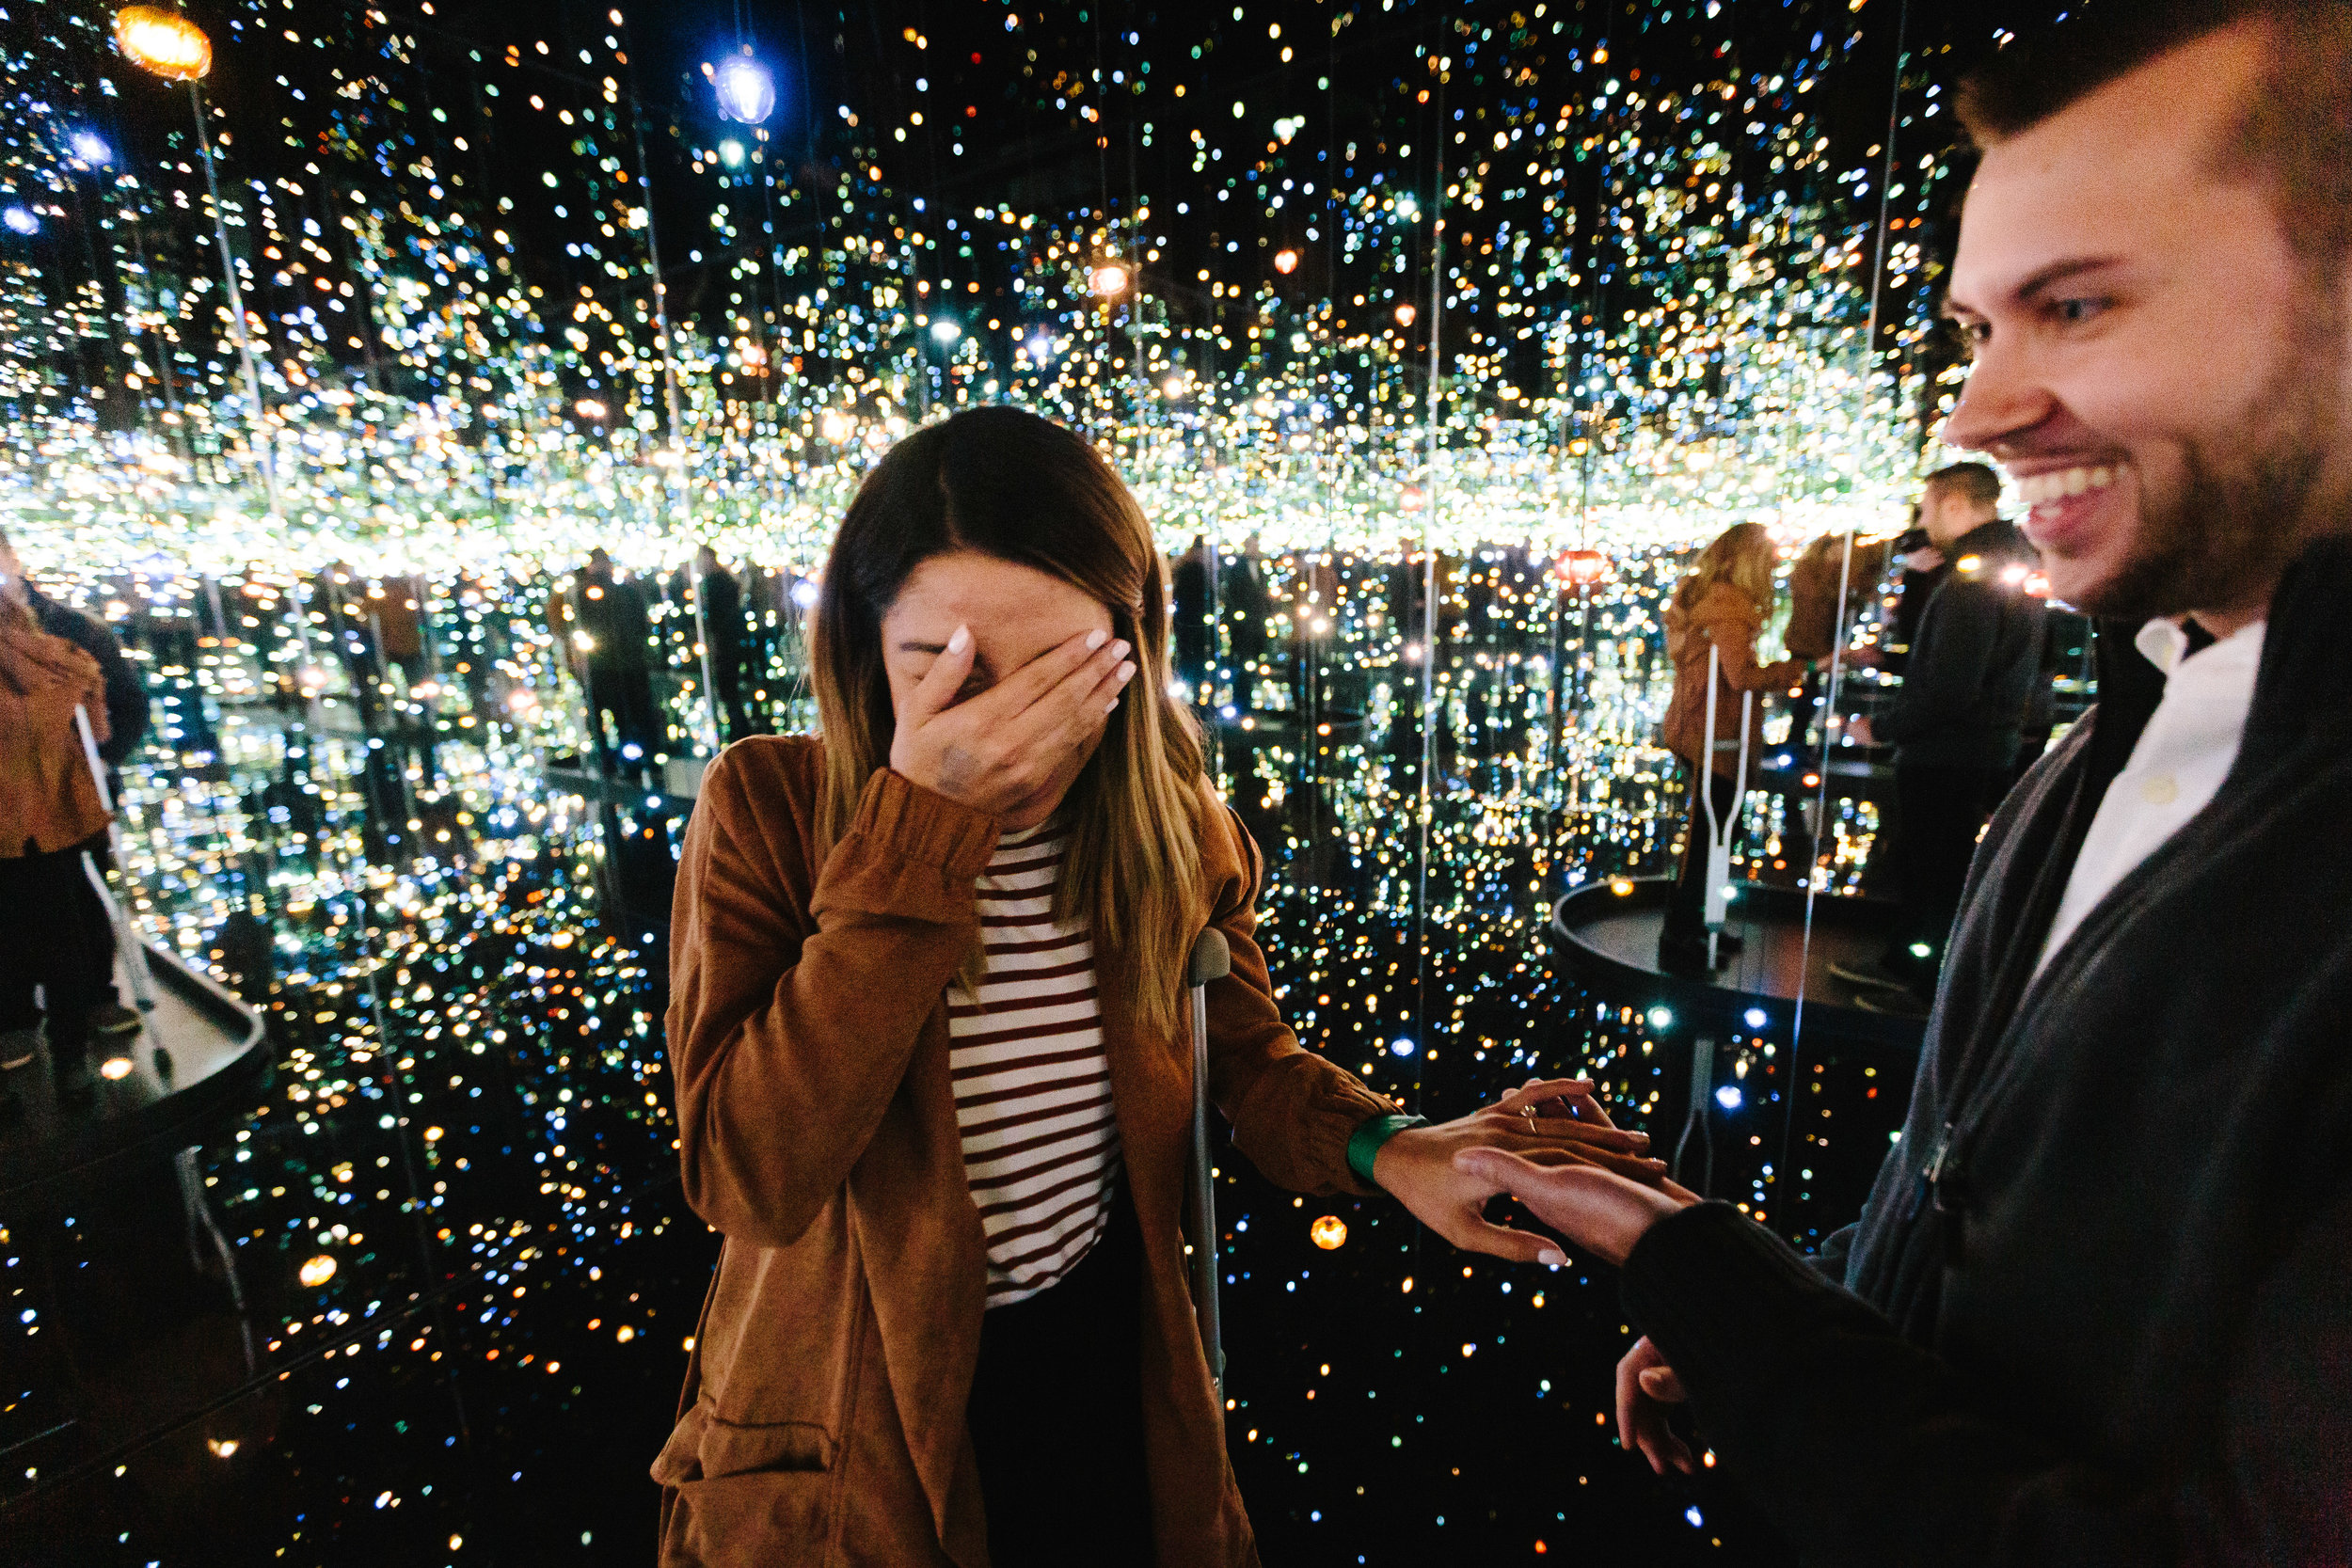 high_museum_infinity_mirrors_Yayoi_Kusama_proposal_amazing_atlanta_real_couple_engagement_ideas_epic_1016.jpg